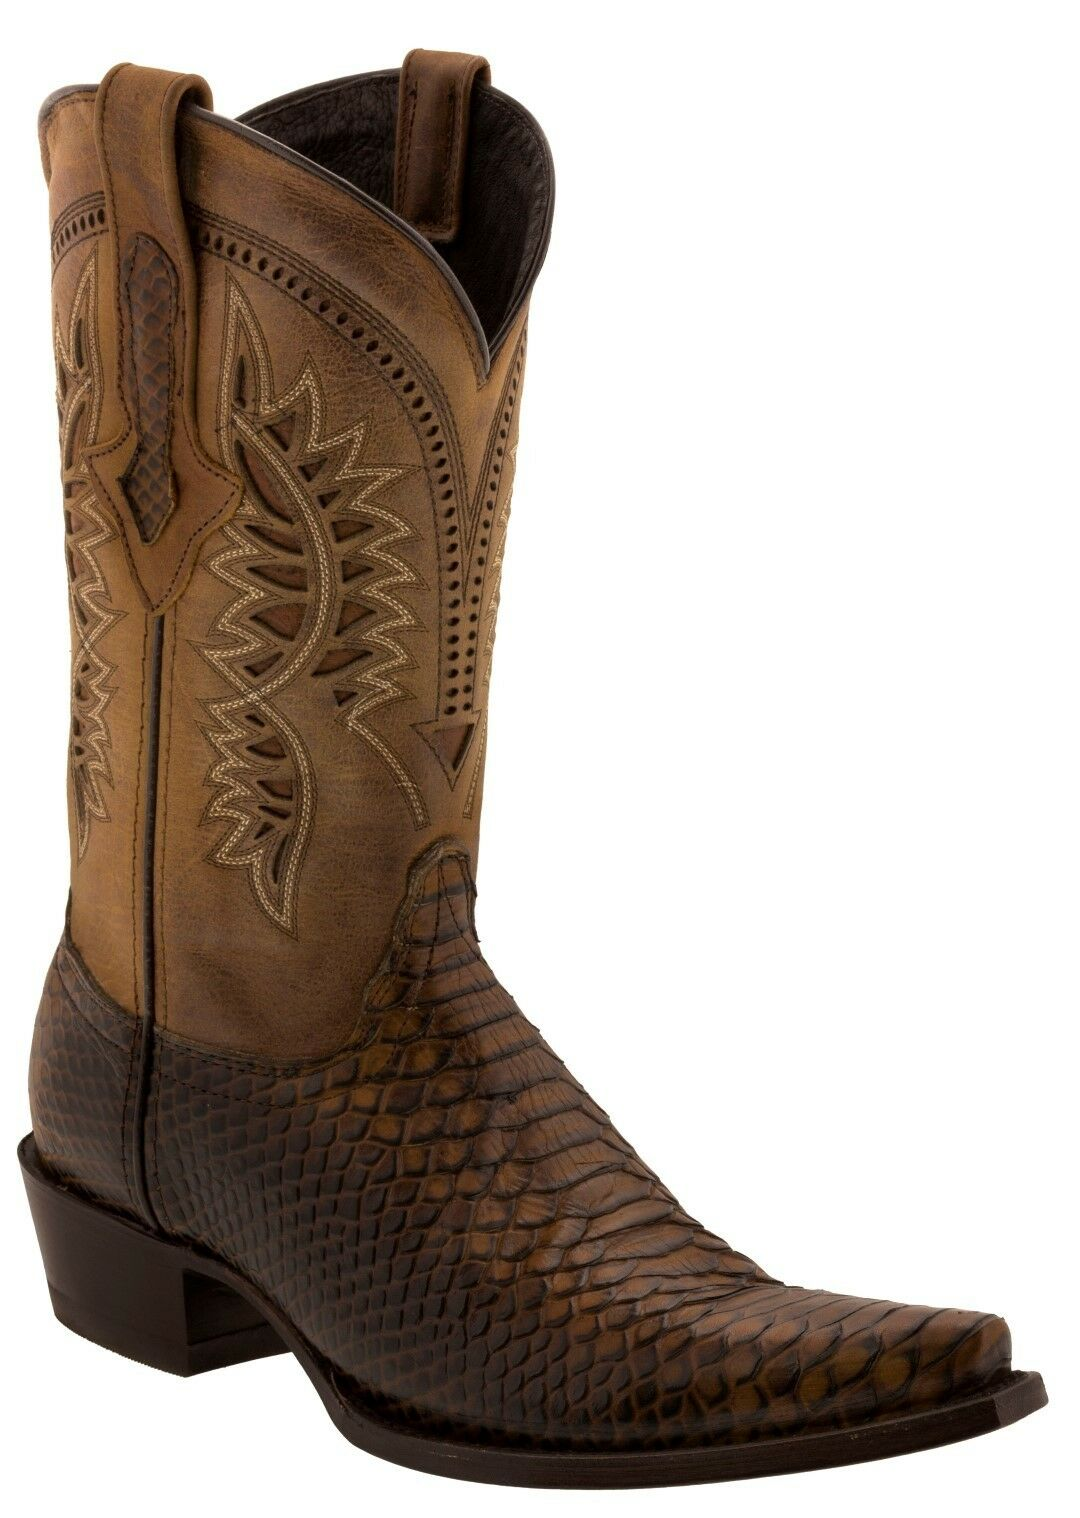 Mens Honey braun Python Leather Cowboy Stiefel Snake Print Western Western Western Pointed Toe 596b2b